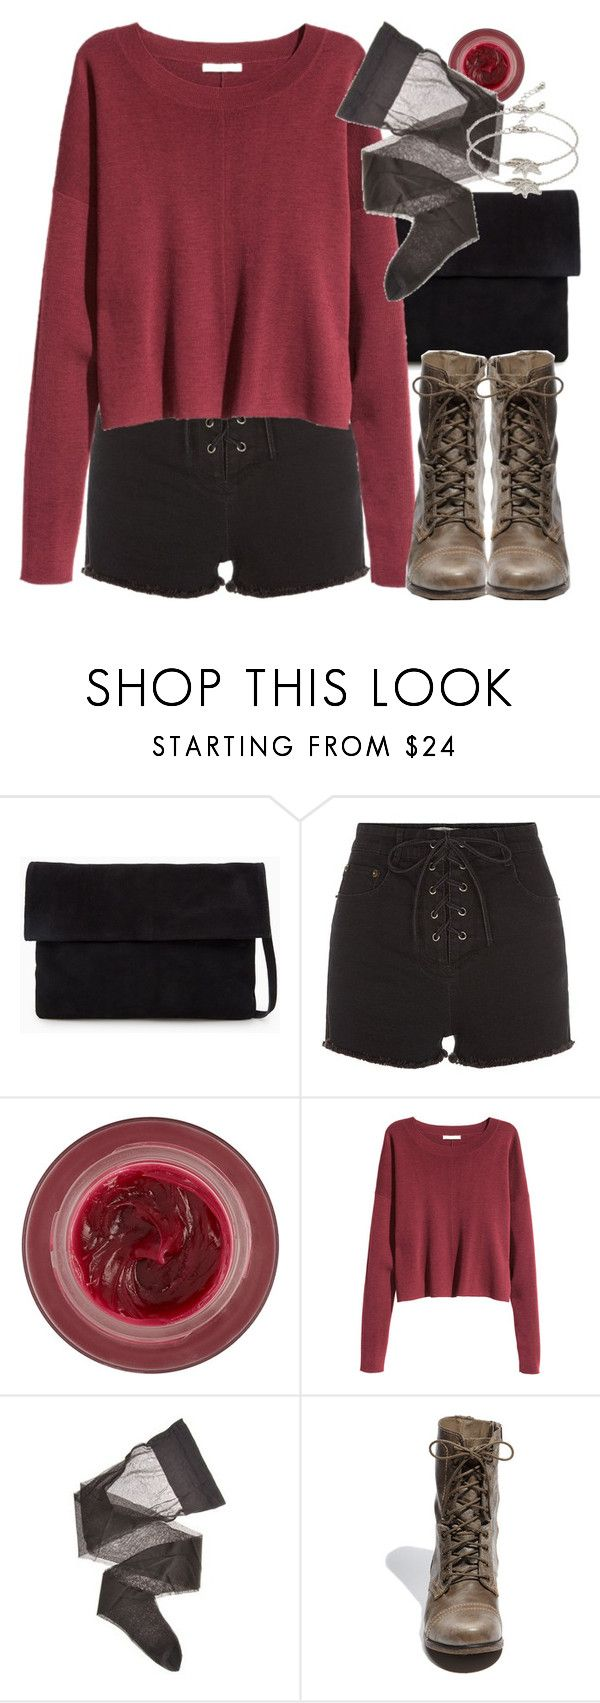 """""""Allison Inspired Outfit with a Red Sweater"""" by veterization ❤ liked on Polyvore featuring MANGO, Lipstick Queen, Wolford, Steve Madden and Forever 21"""